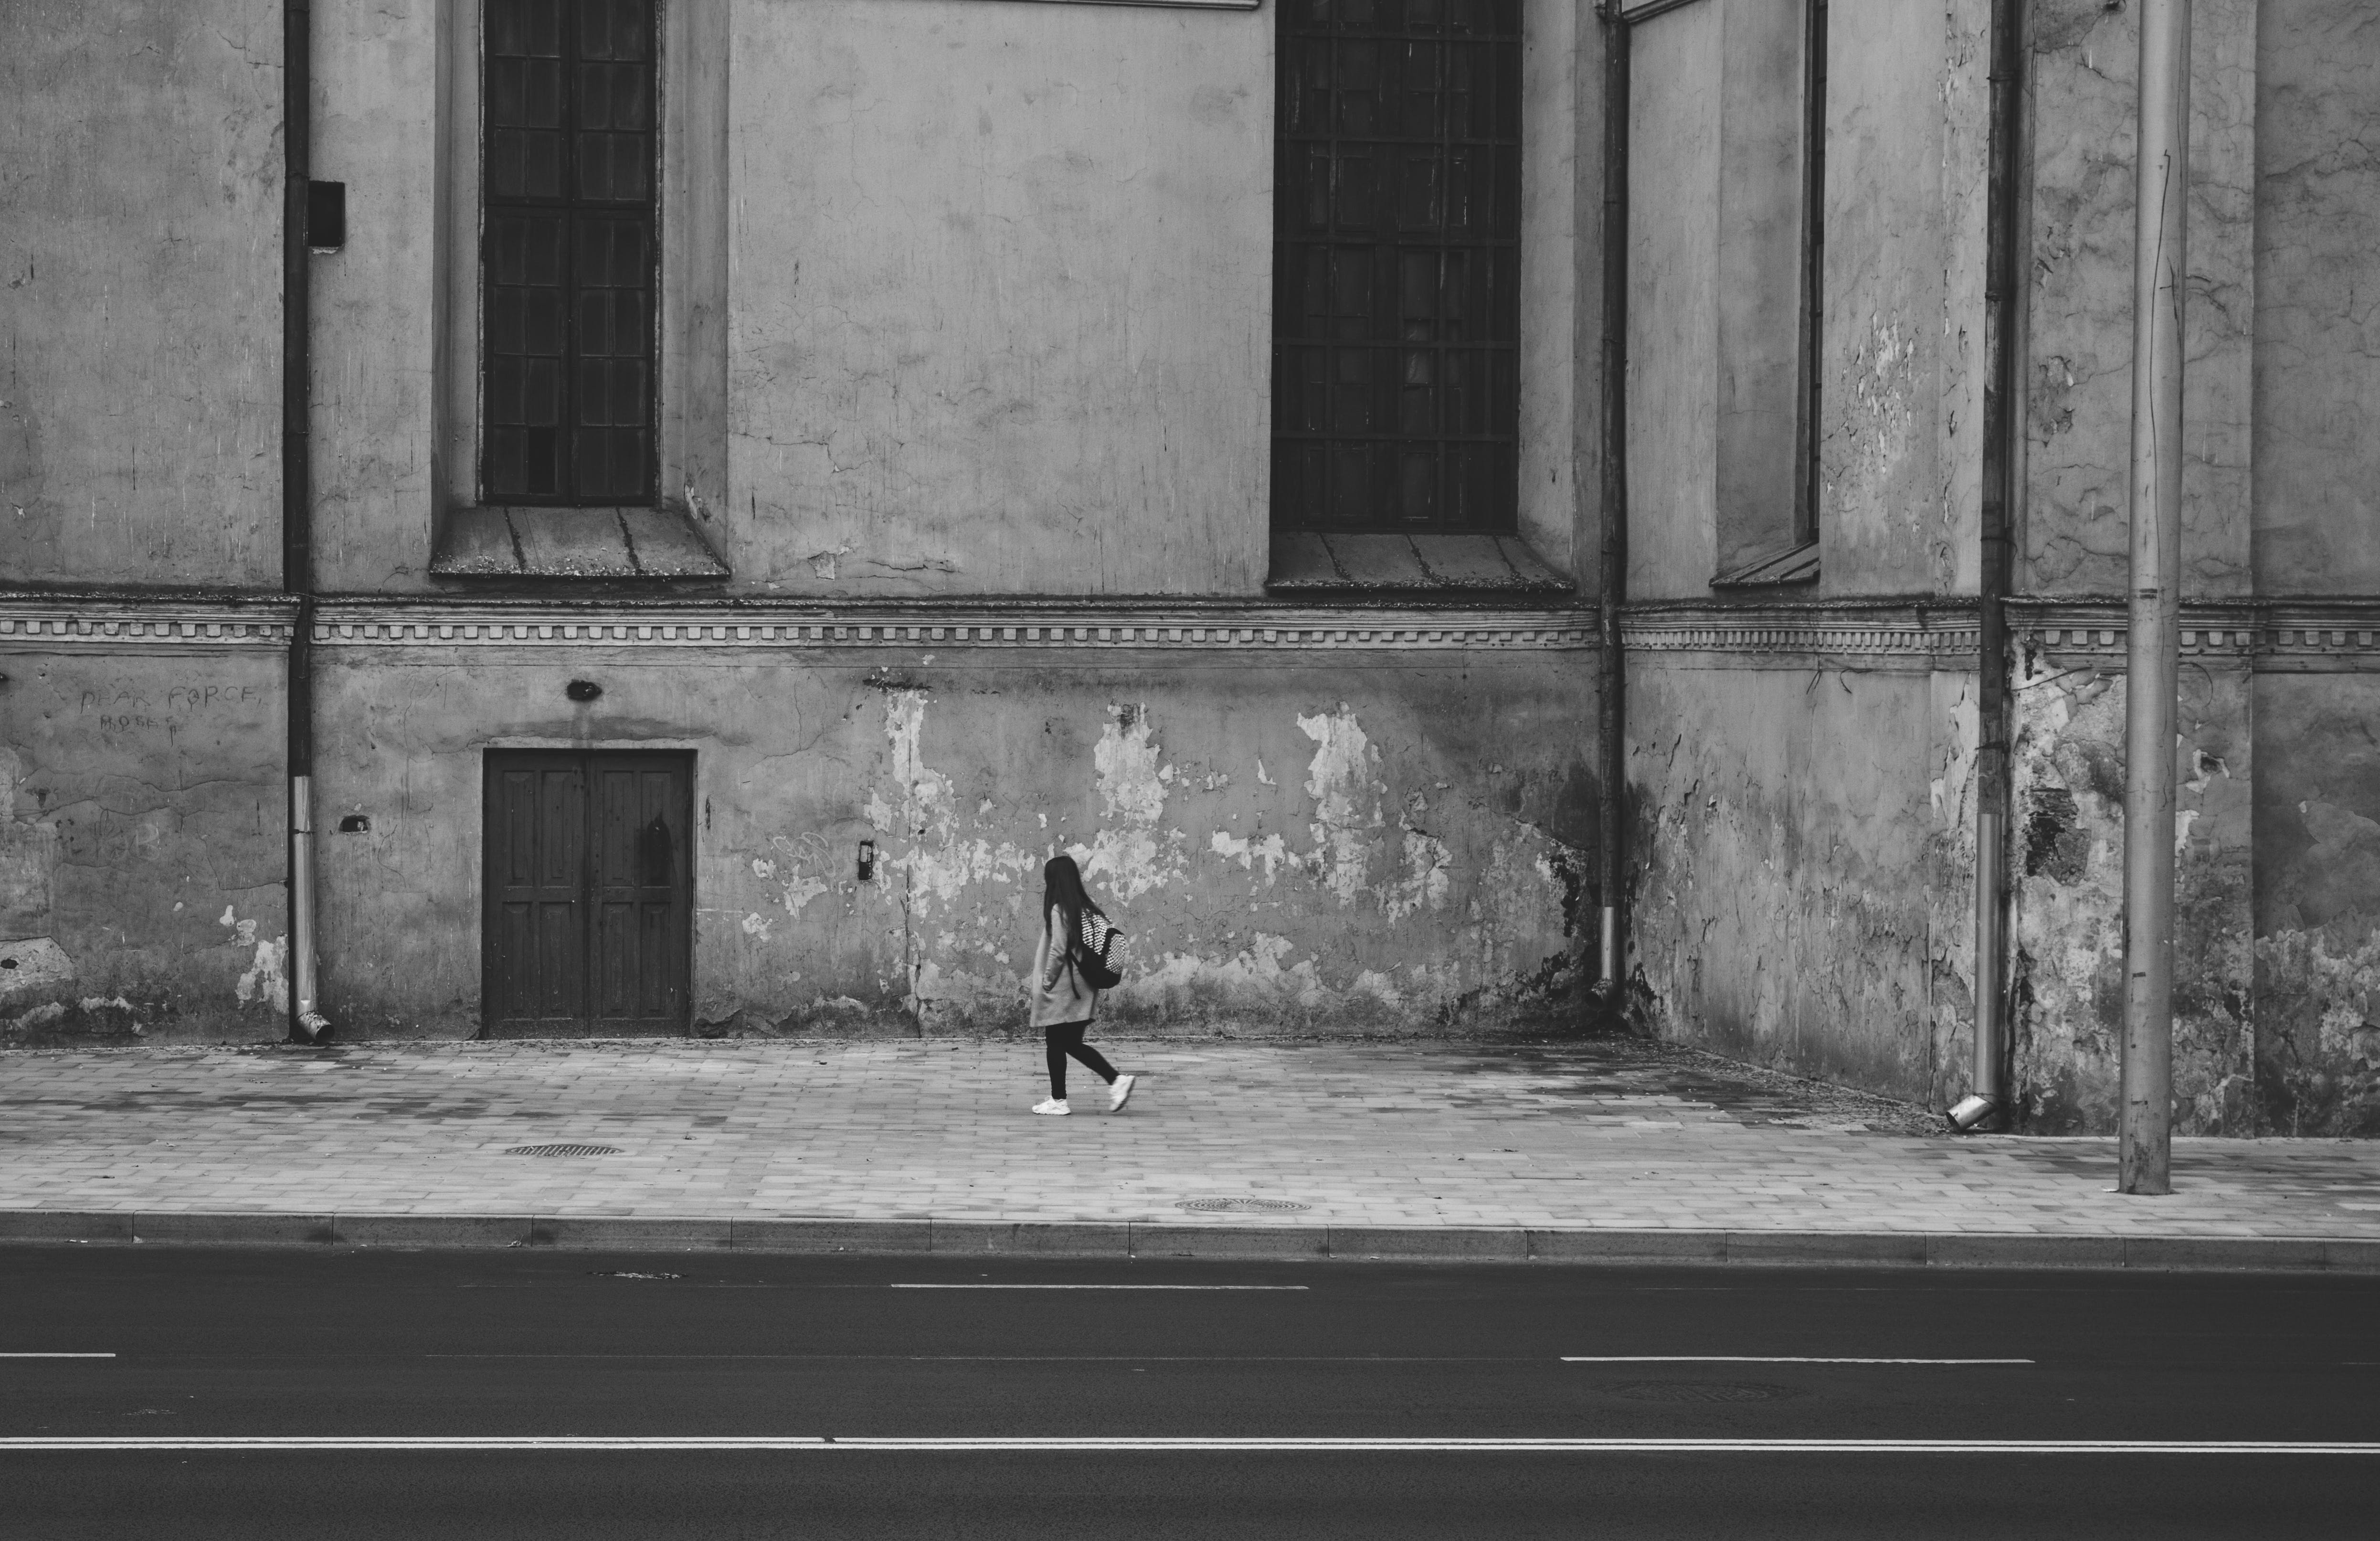 Gray Scale Photography of Woman Walking Near High Rise Building